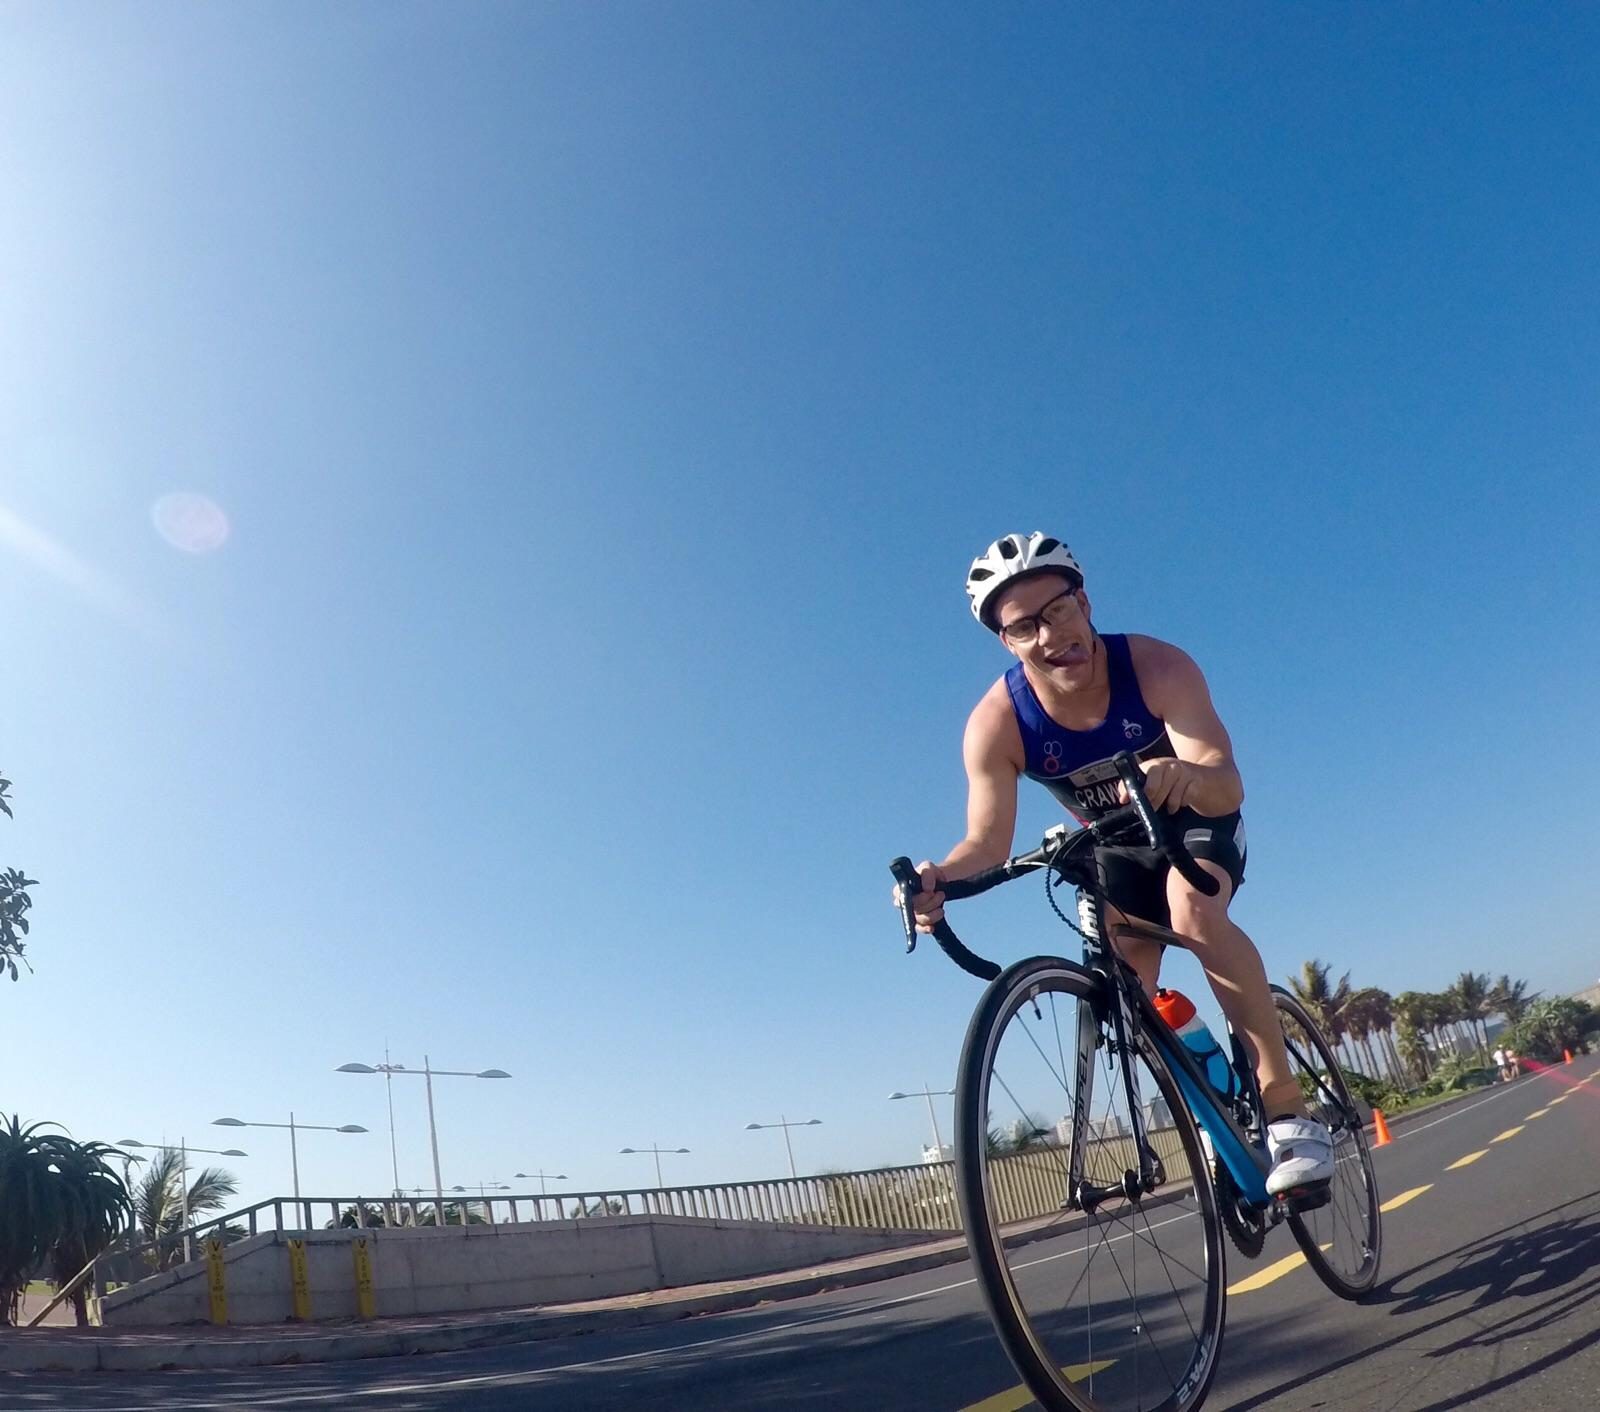 With triathlon being his passion, Sebastian Crawford will drop the swimming and running as he takes on the 2015 Momentum 94.7 Cycle Challenge as part of The Paige Project team that looks to raise funds for cerebral palsy.